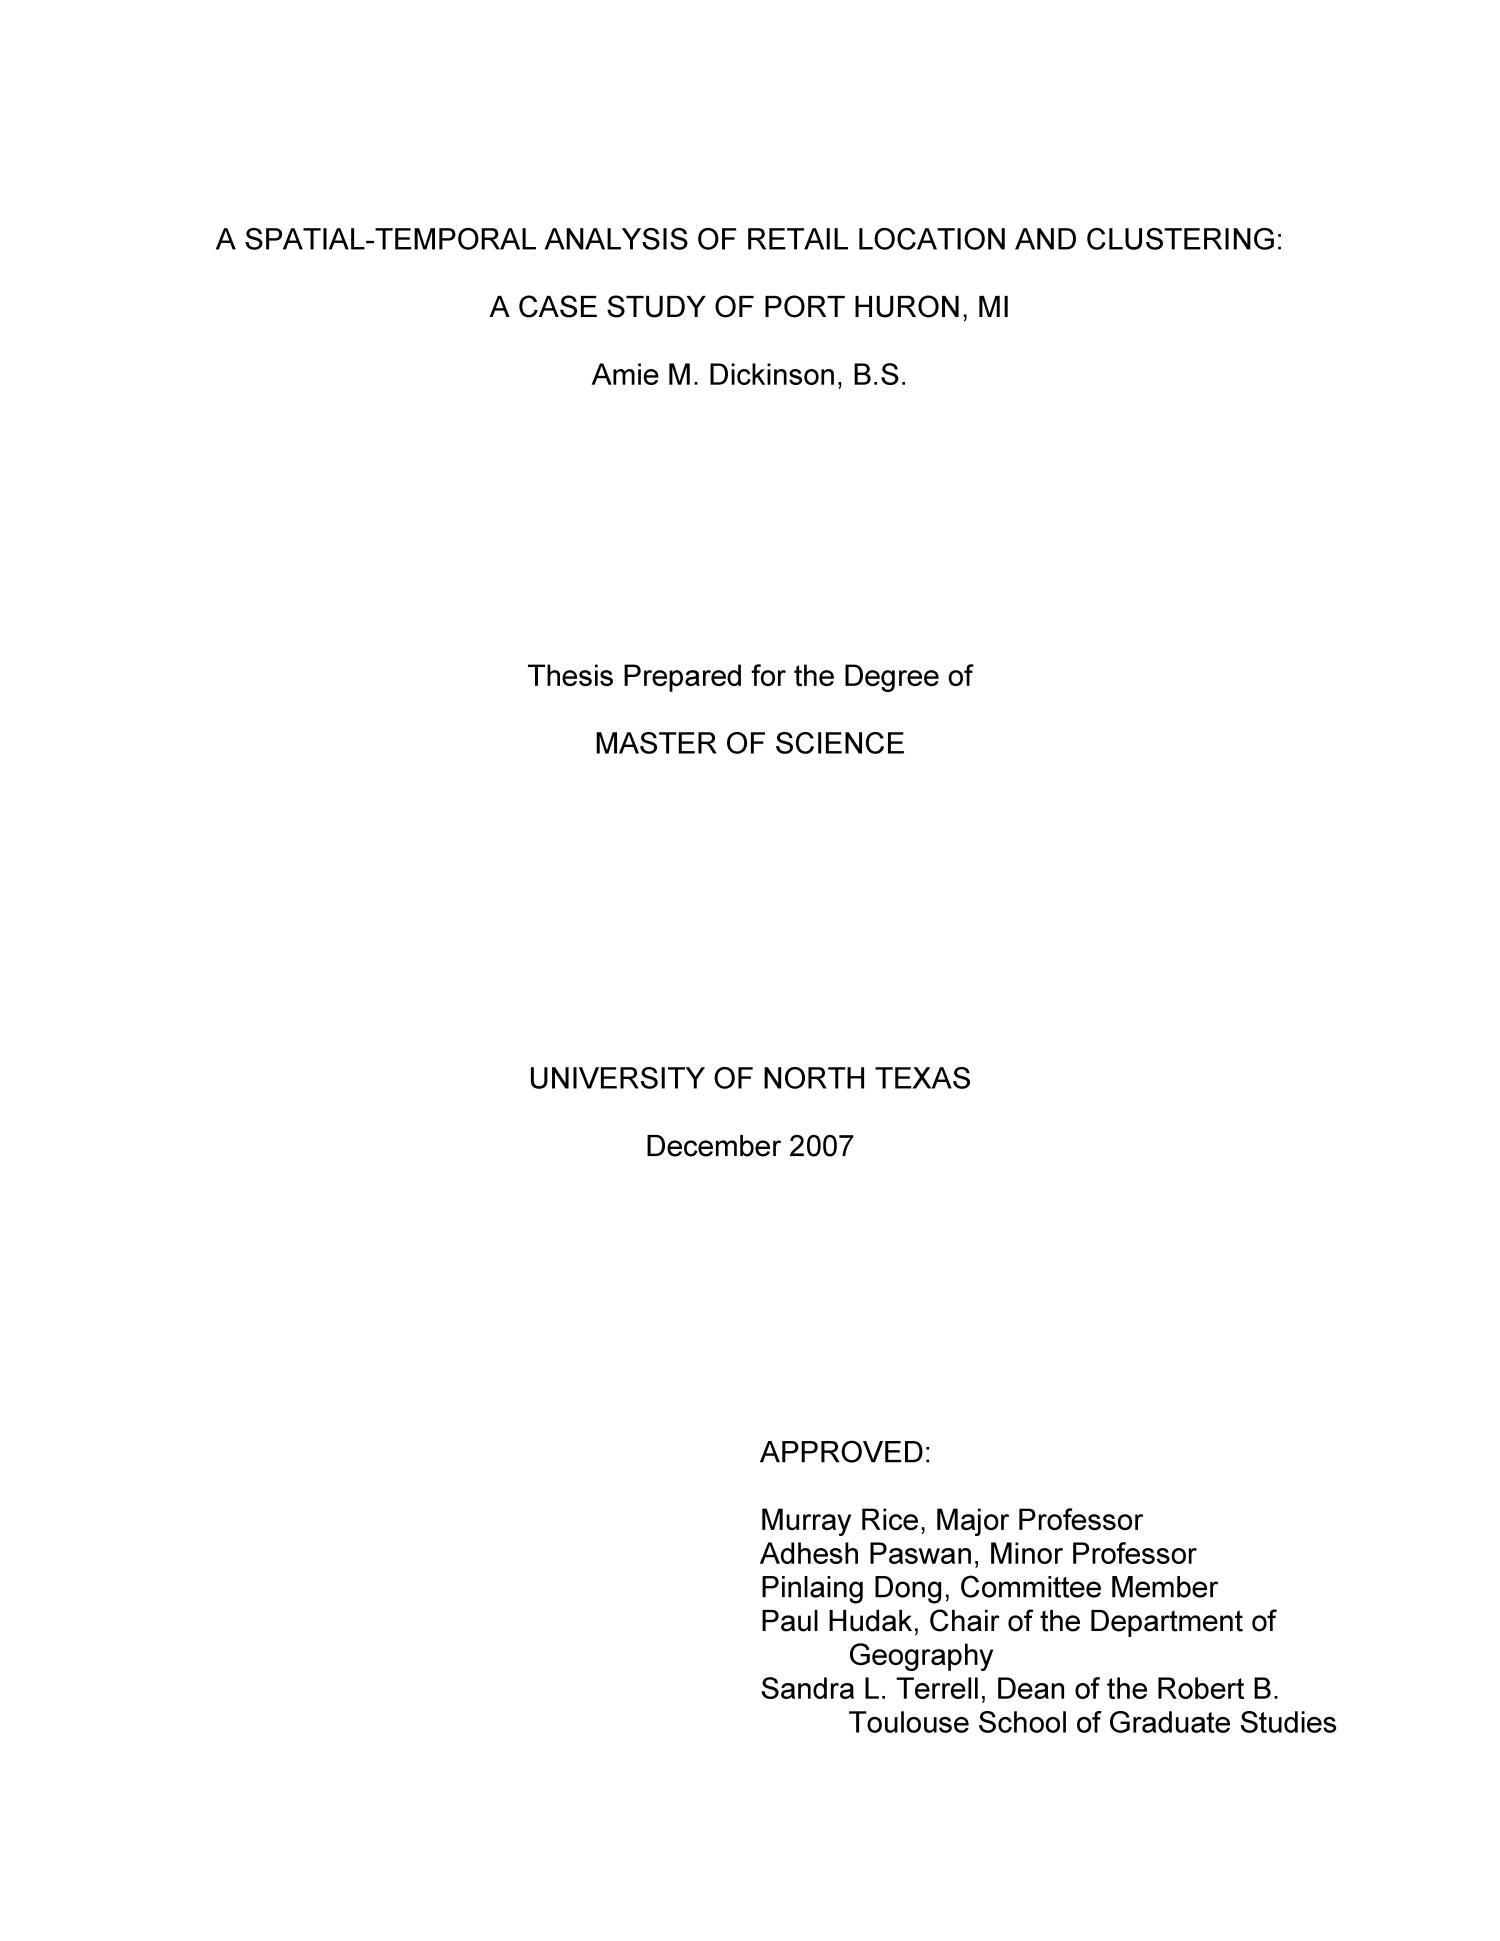 oclcs experimental thesis catalog Oclc catalog of dissertations and theses available in oclc member libraries   all dissertations, theses and published material based on theses cataloged by.